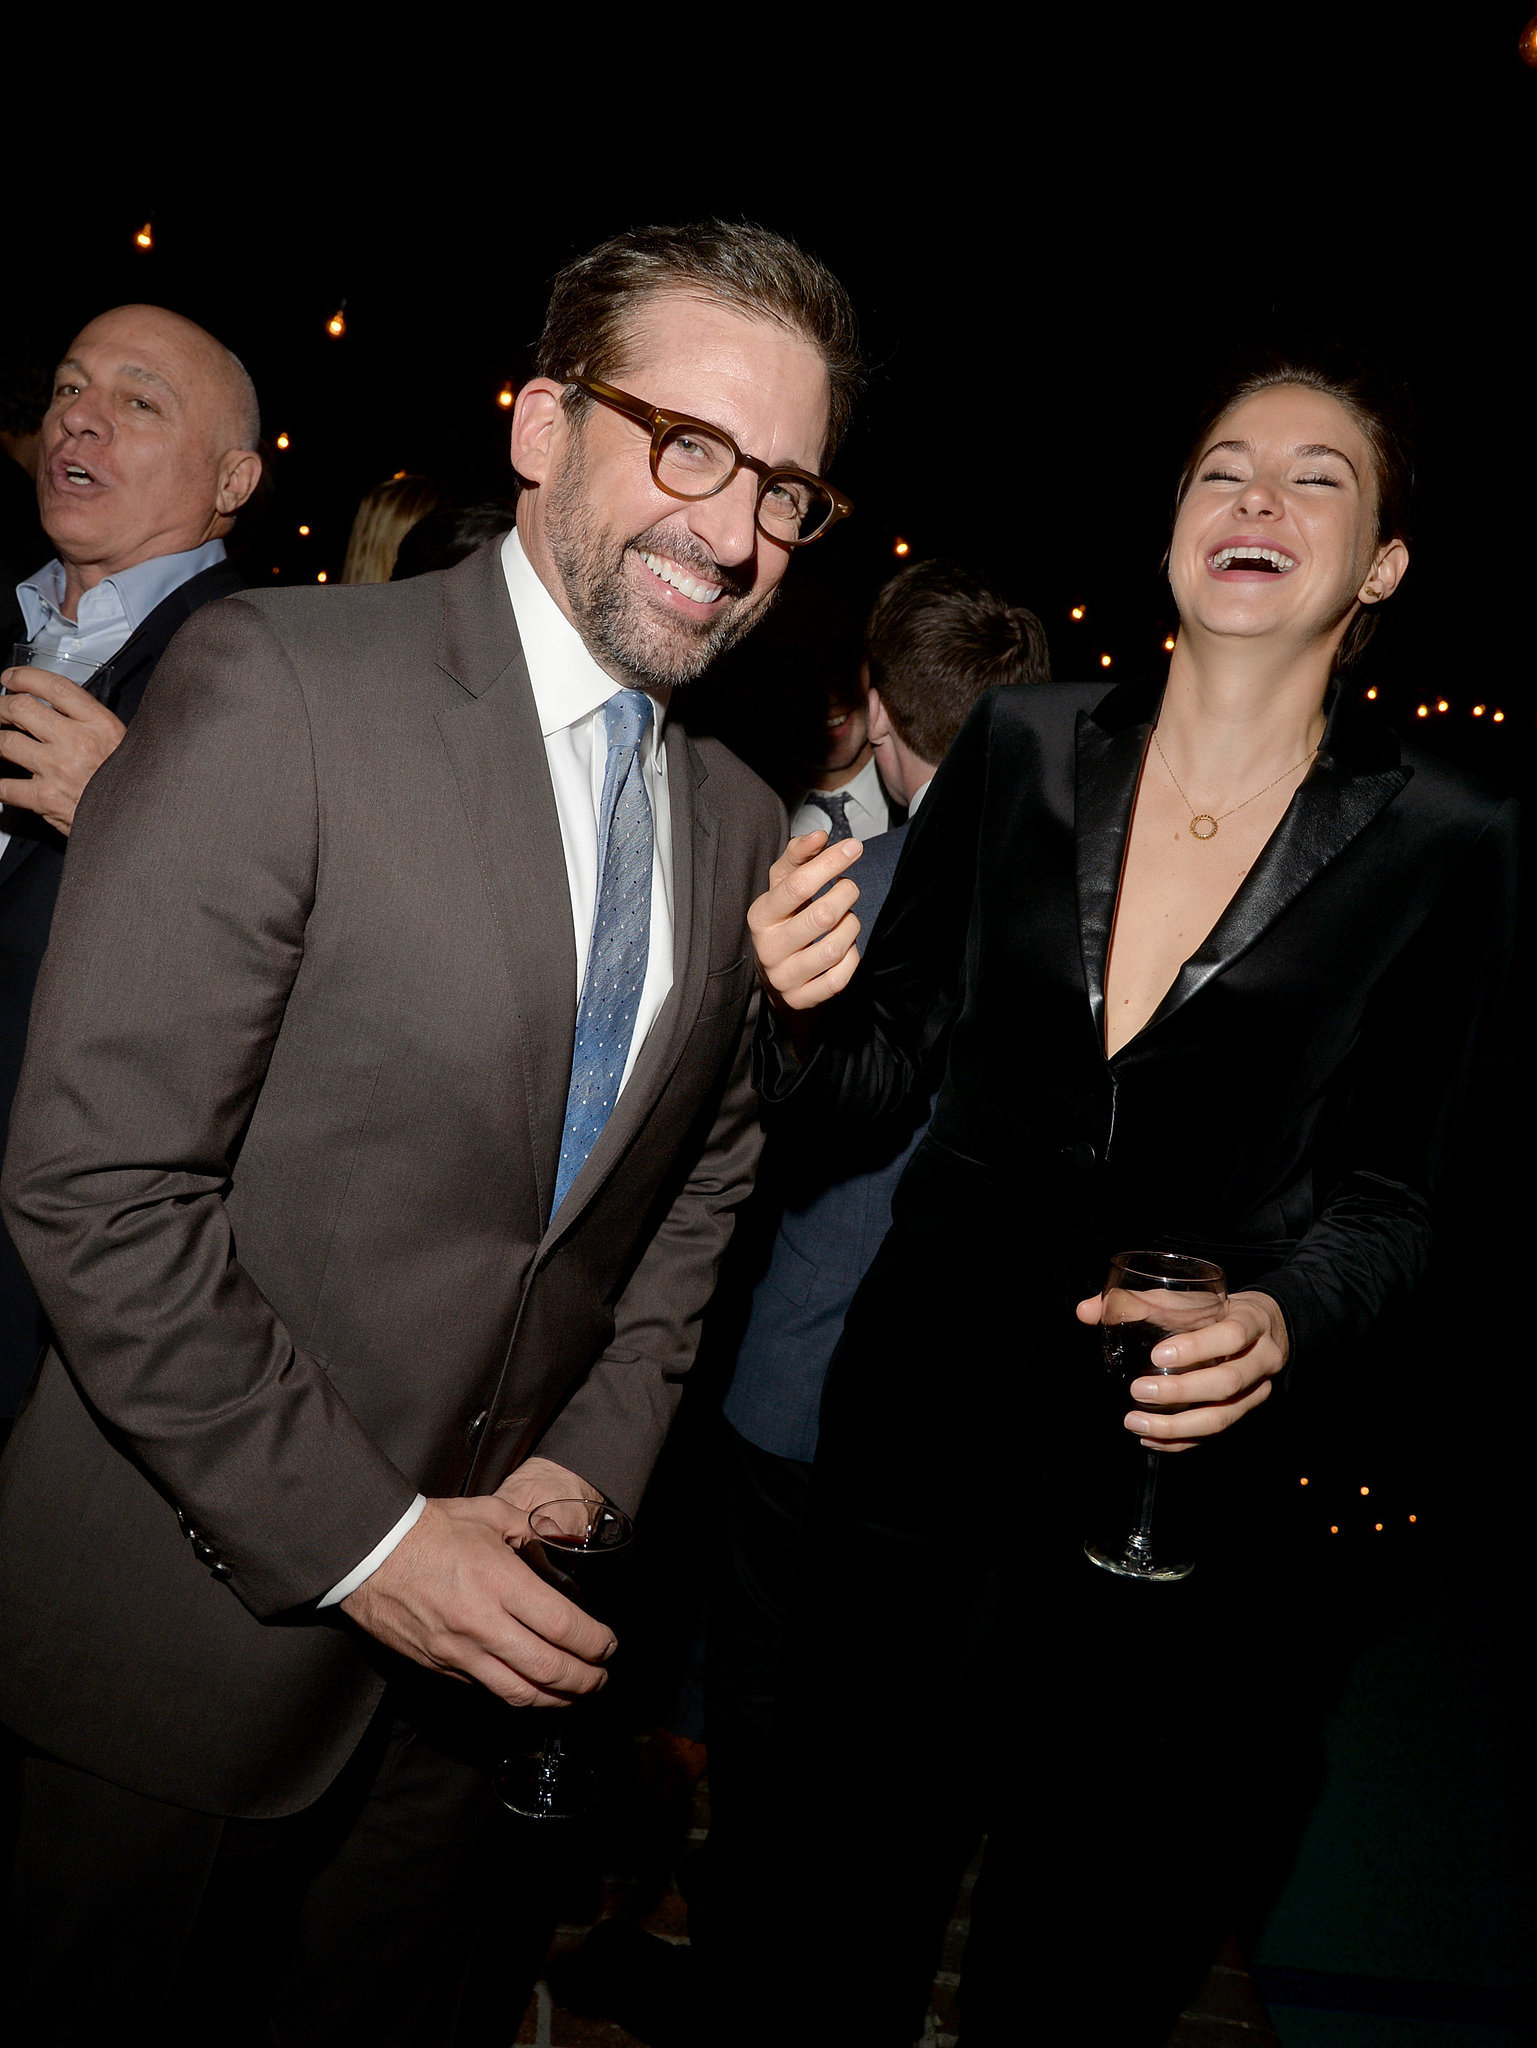 Photo of Steve Carell & his friend  Shailene Woodley